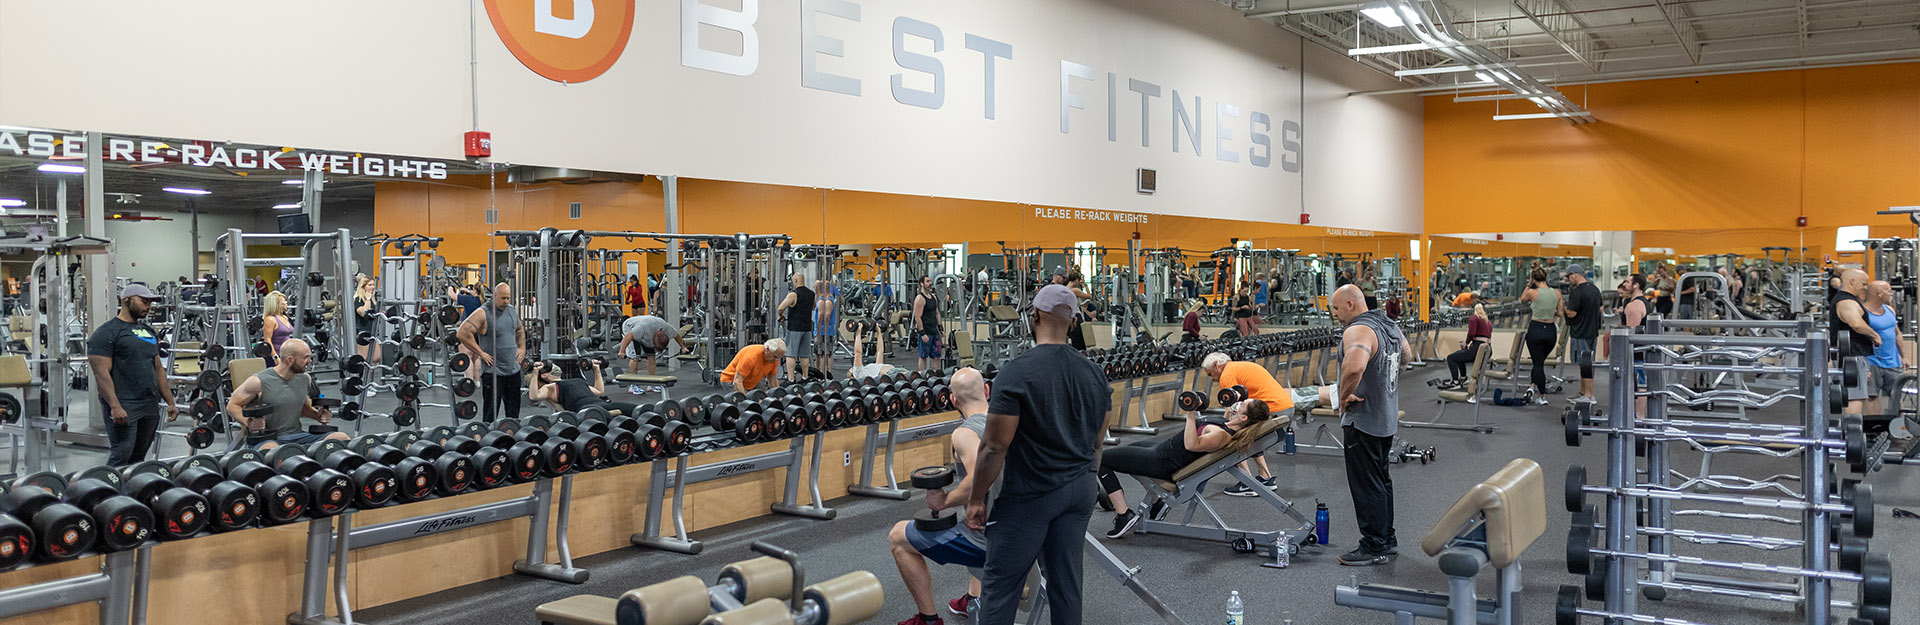 rows of free weights